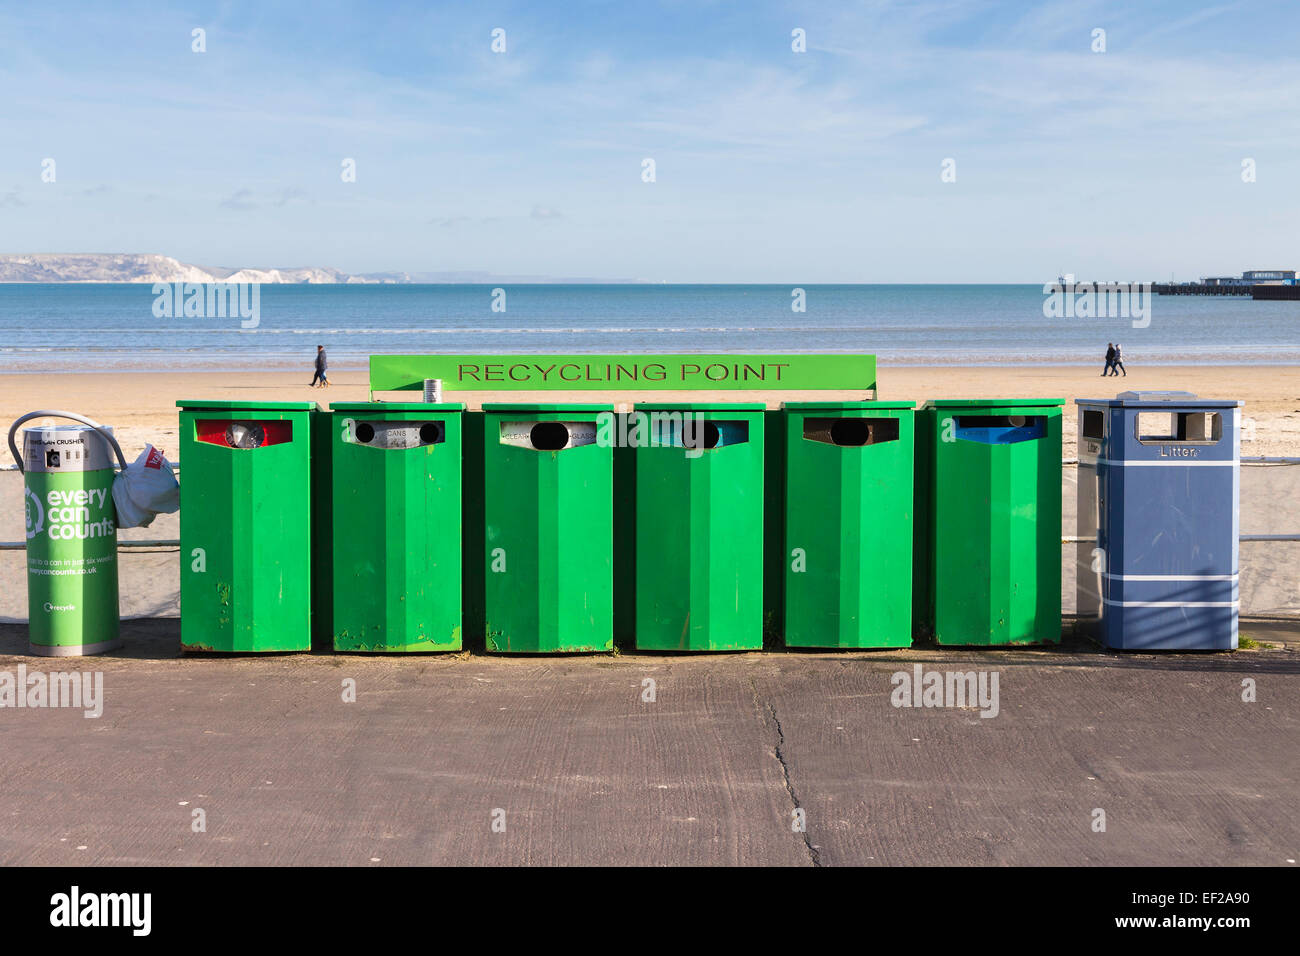 A Recycling Point, recycling plastic, cans, clear glass, green glass, brown glass, paper and litter on Weymouth - Stock Image